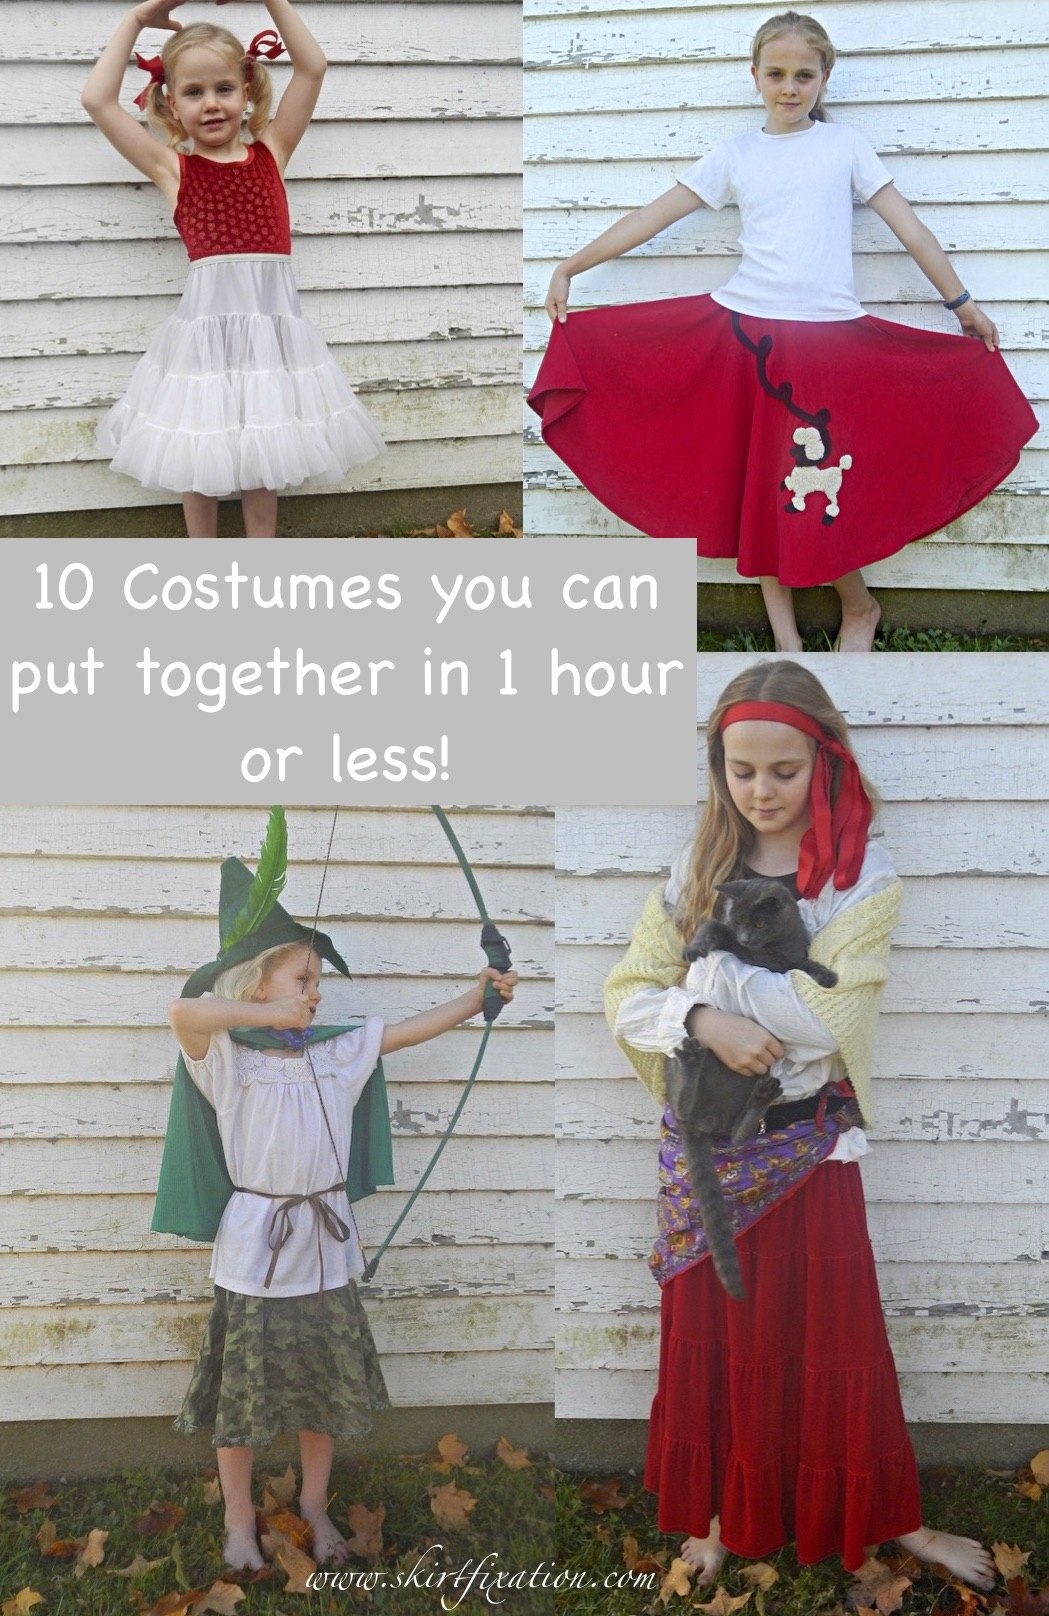 10 skirt costumes you can make in 1 hour or less!